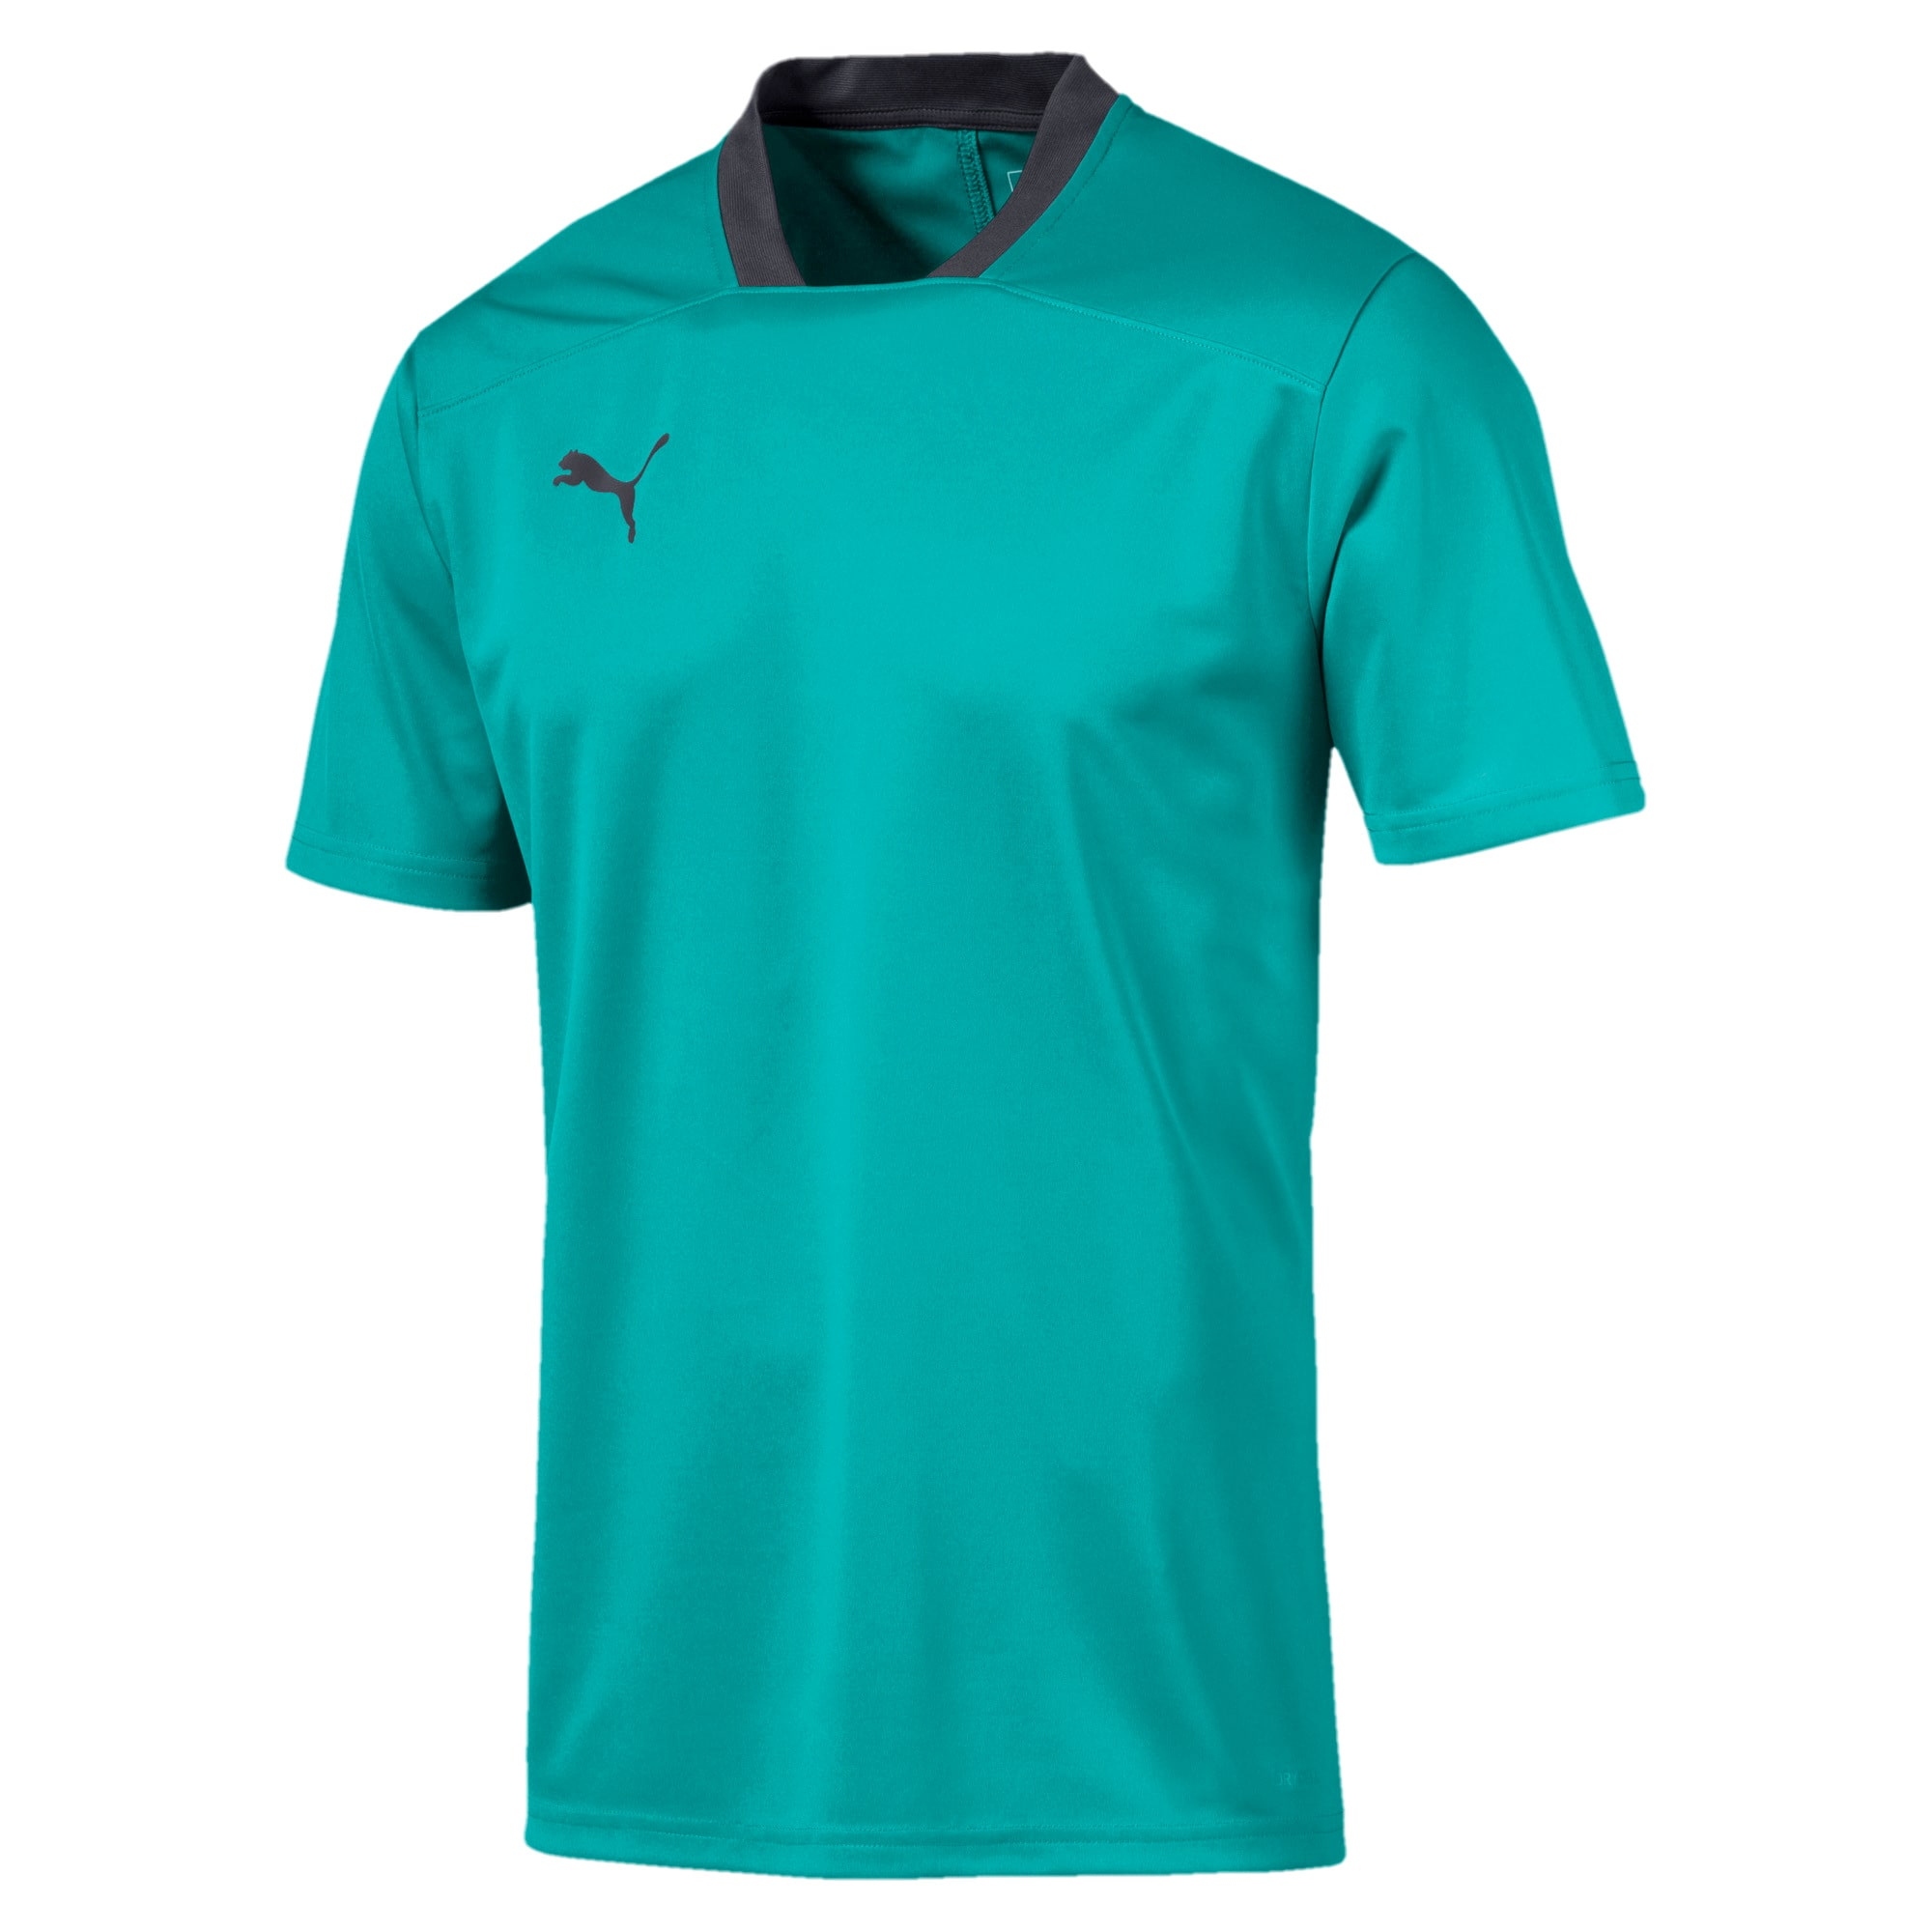 Thumbnail 4 of Men's Training Tee, Blue Turquoise-Ebony, medium